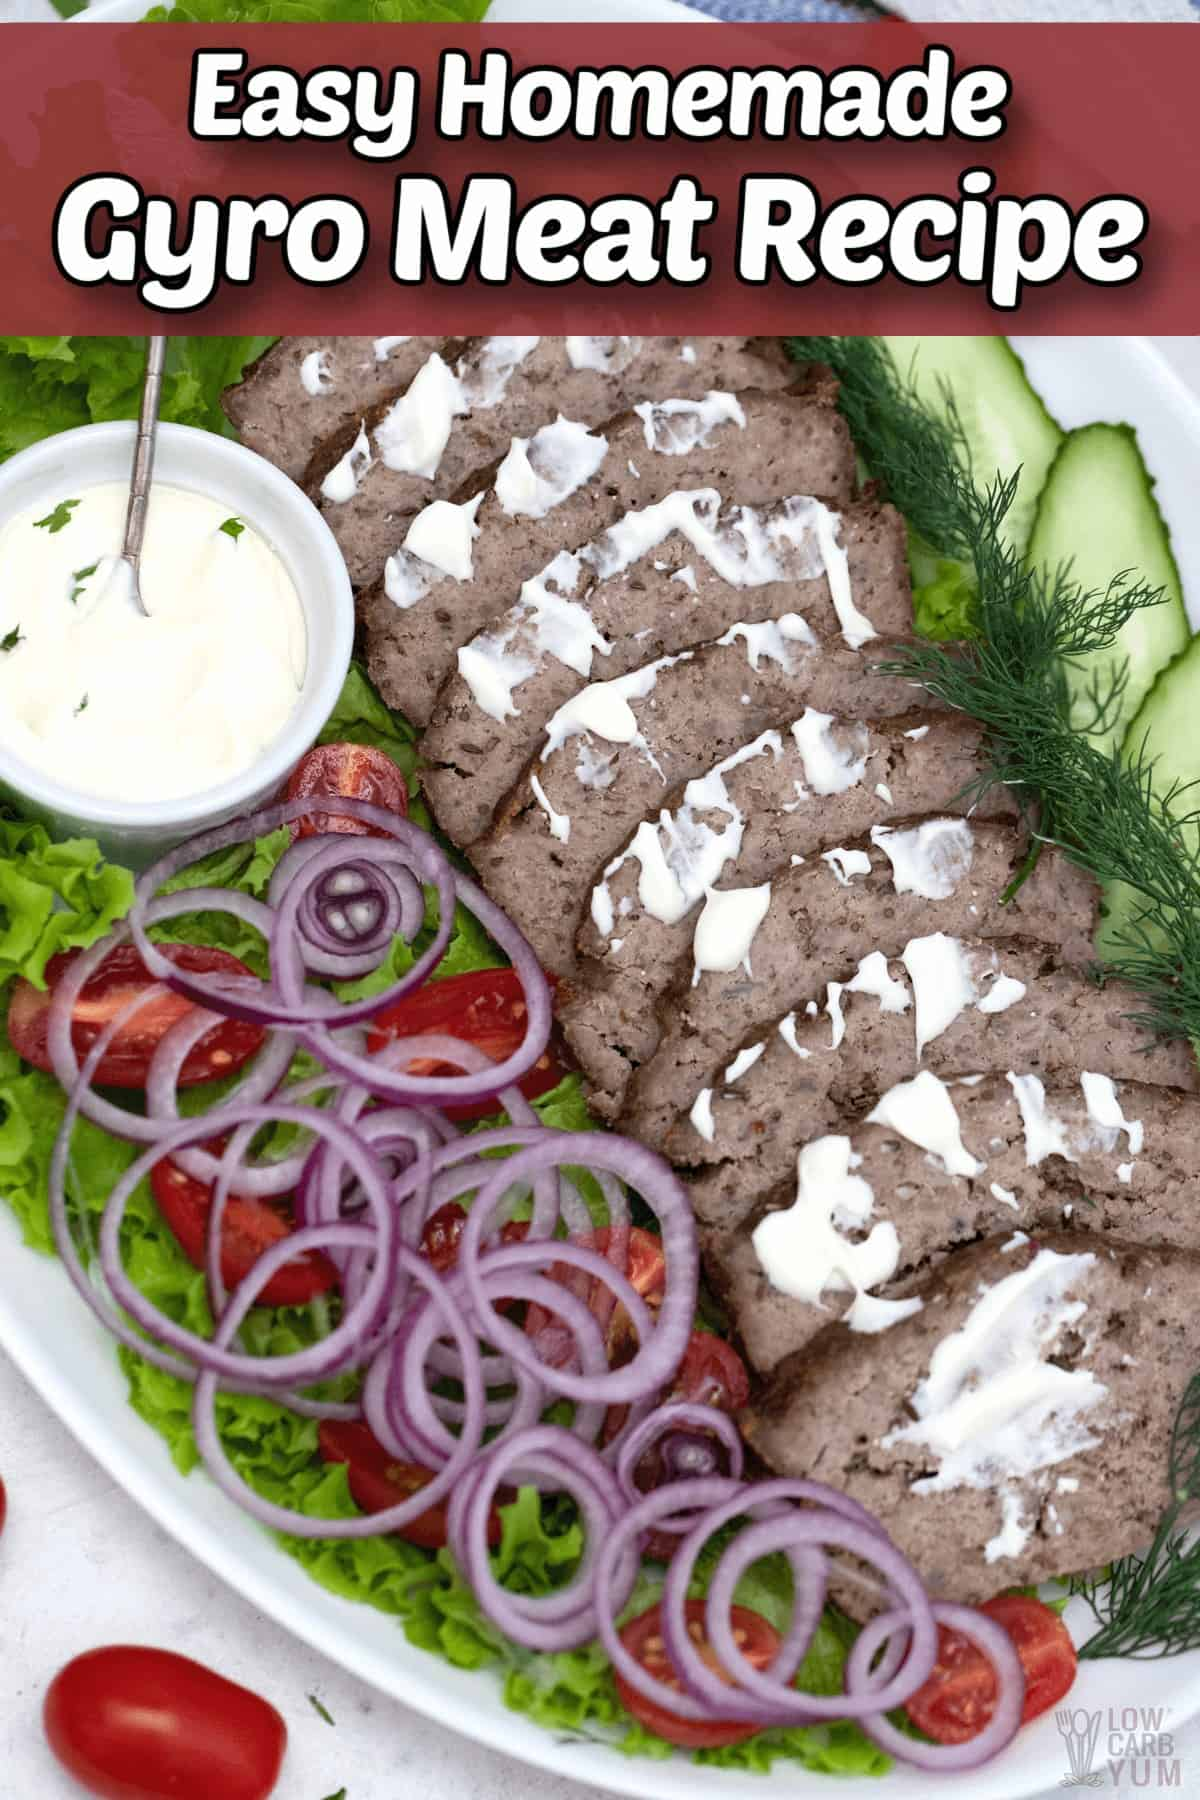 easy homemade gyro meat recipe pintrest image